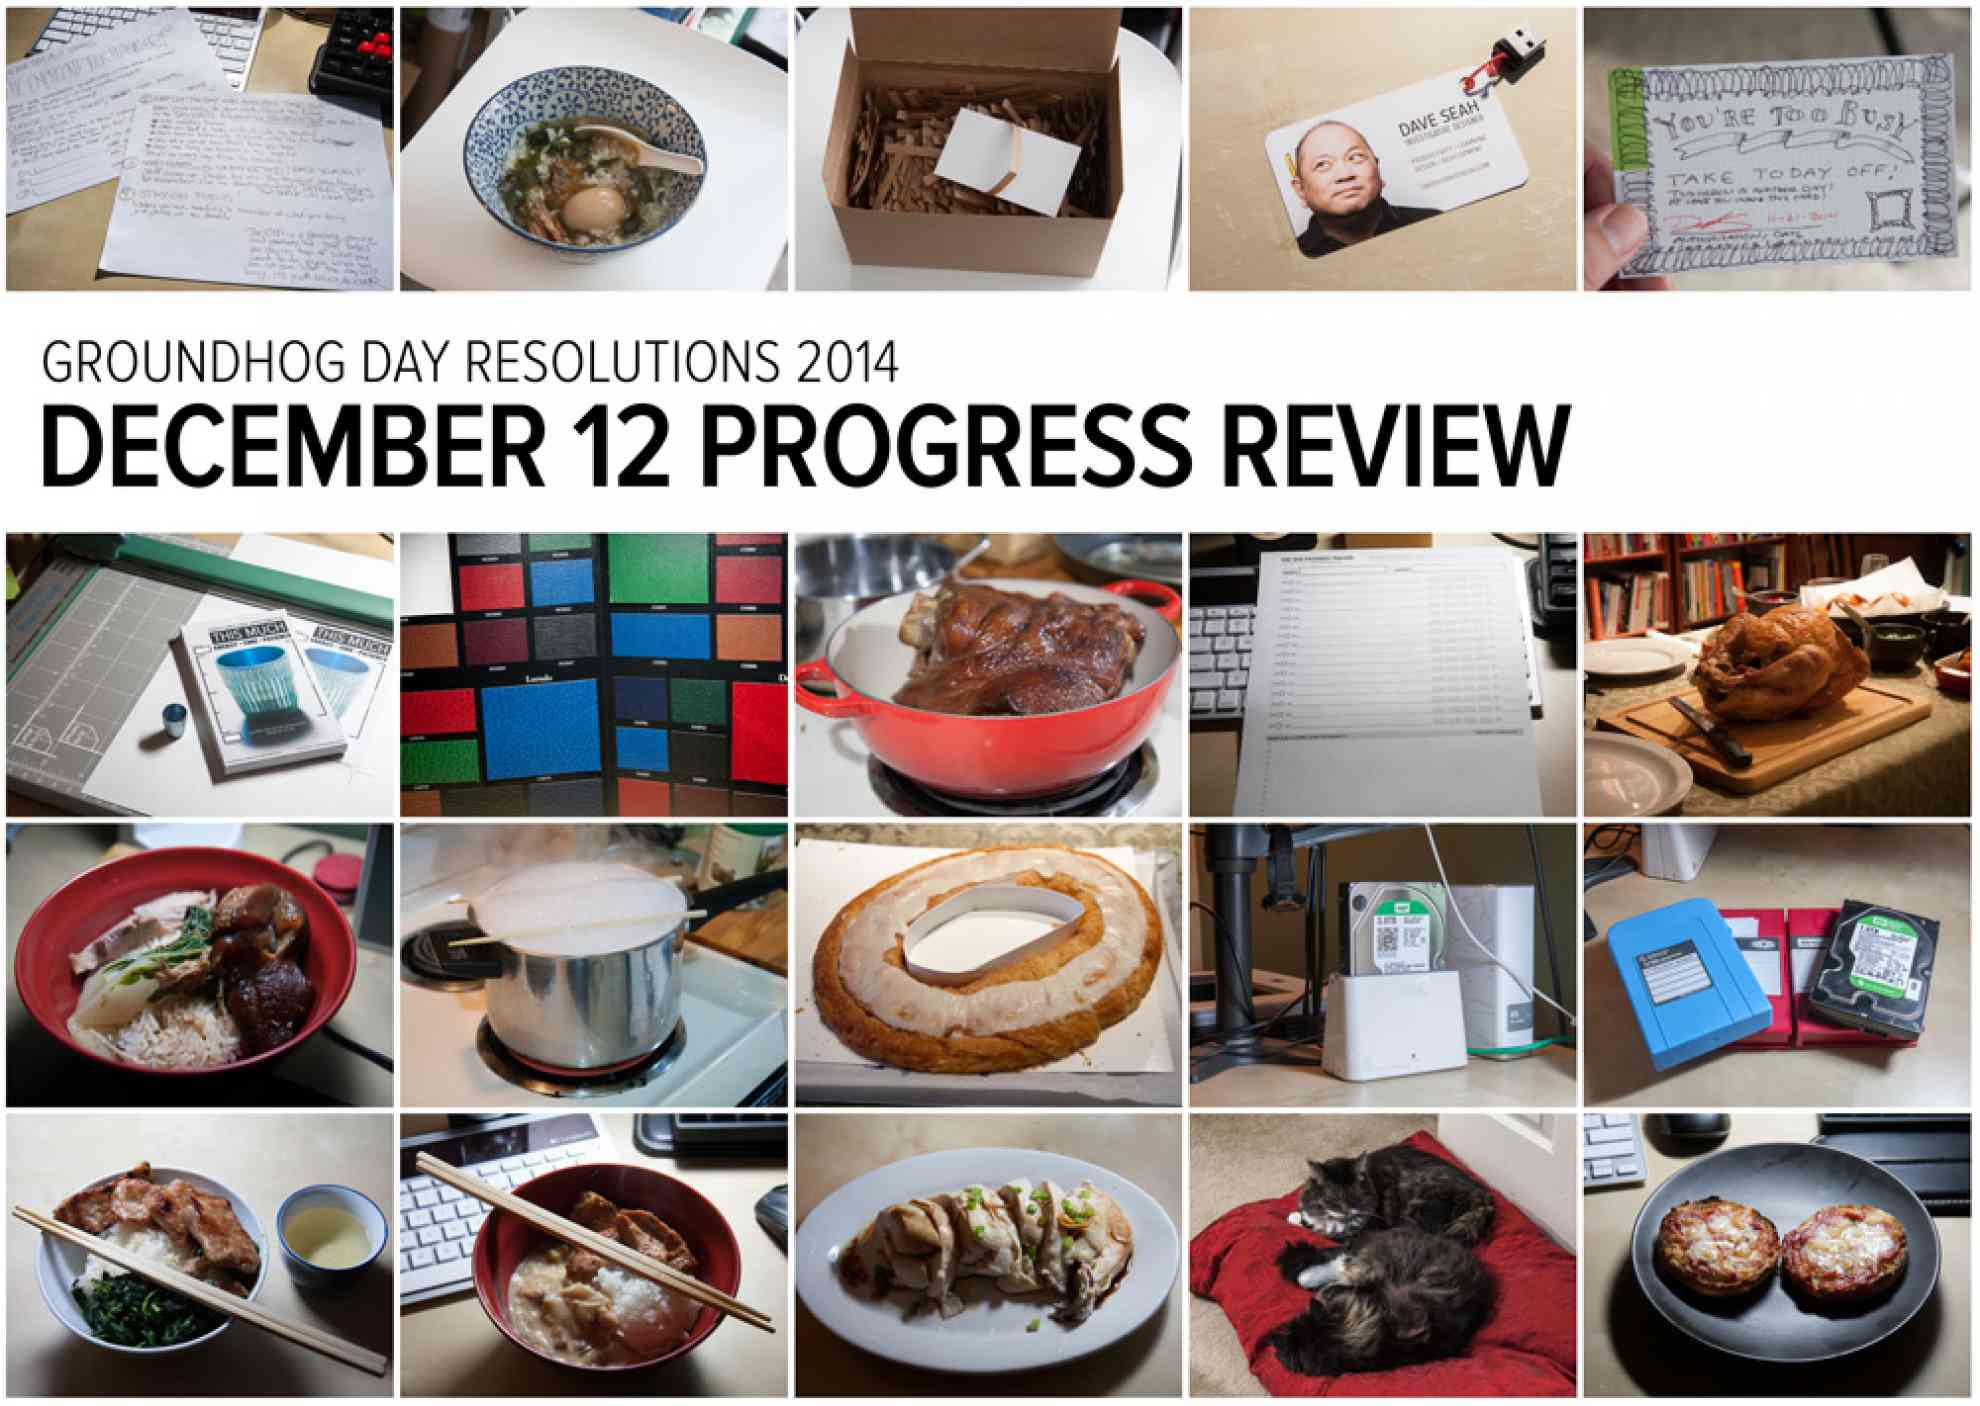 Groundhog Day Resolutions December 12, 2014